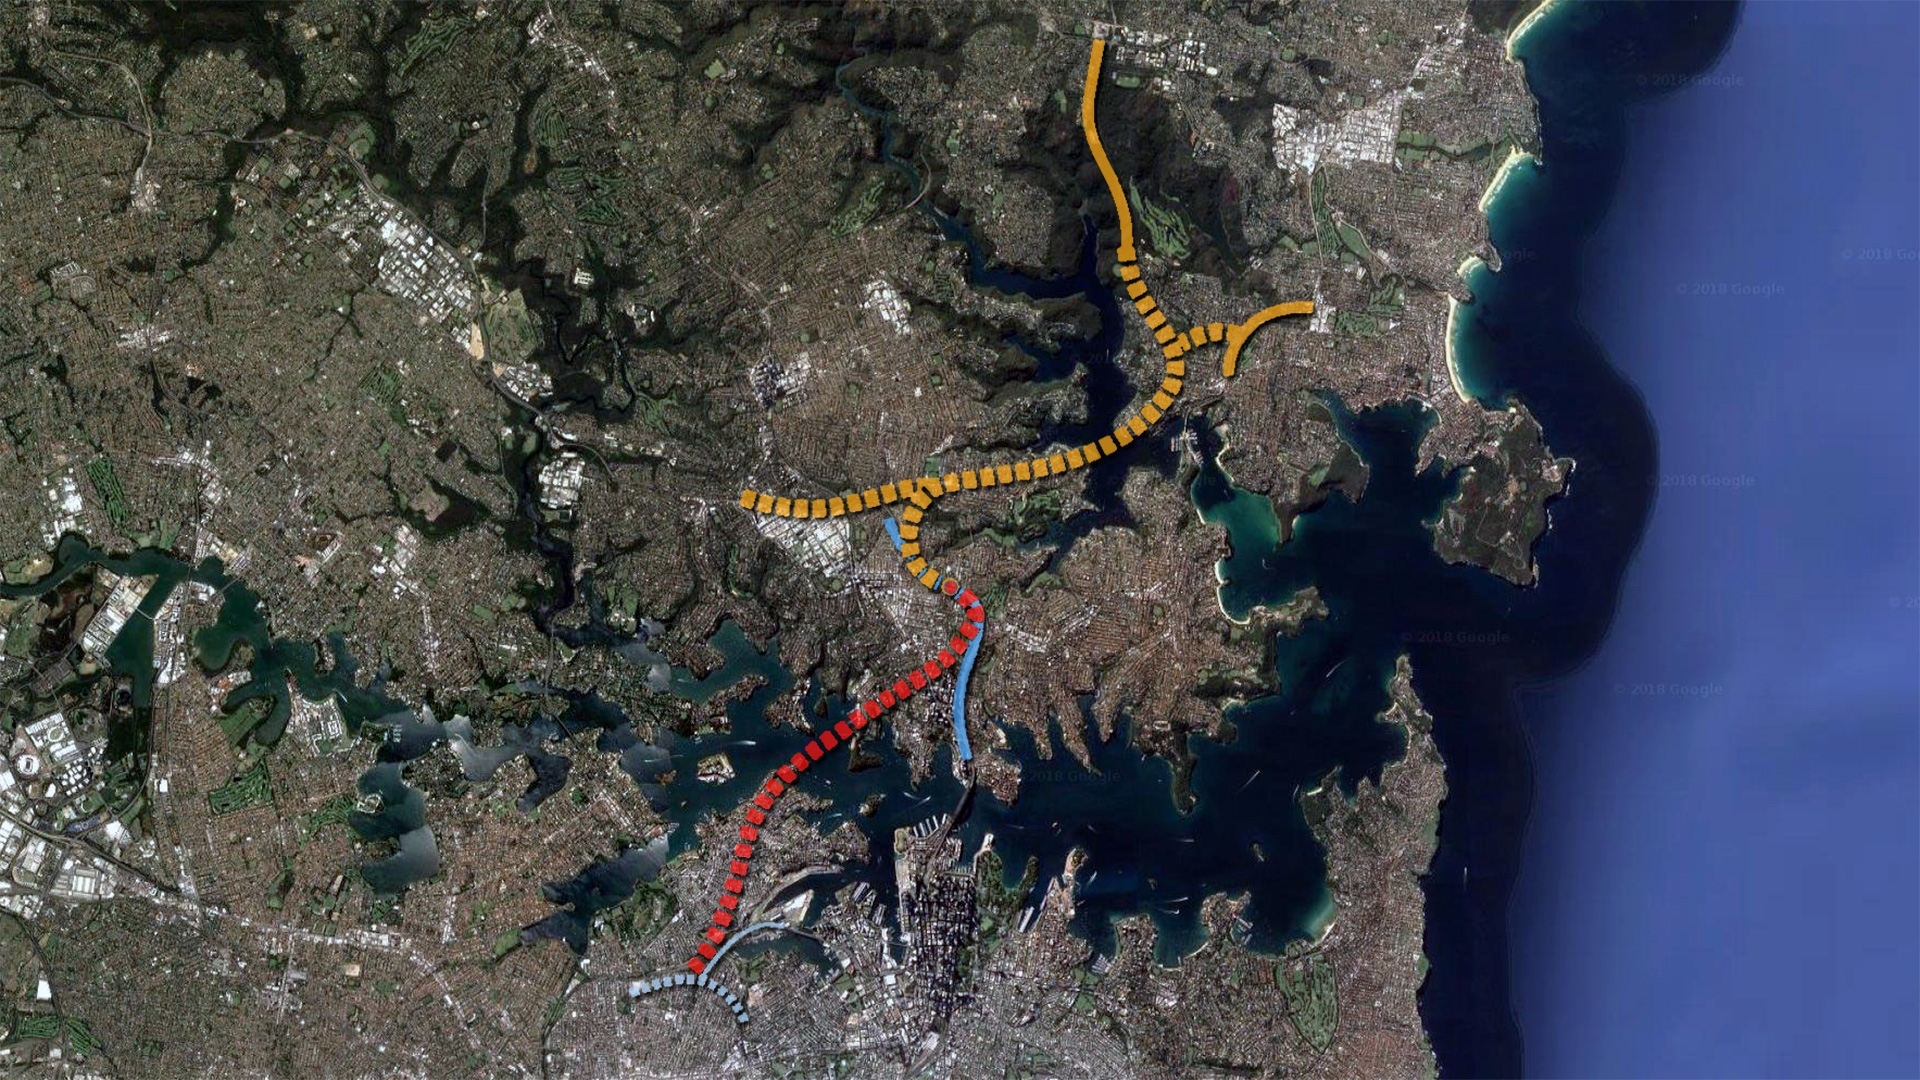 Large project causes concerns in Sydney